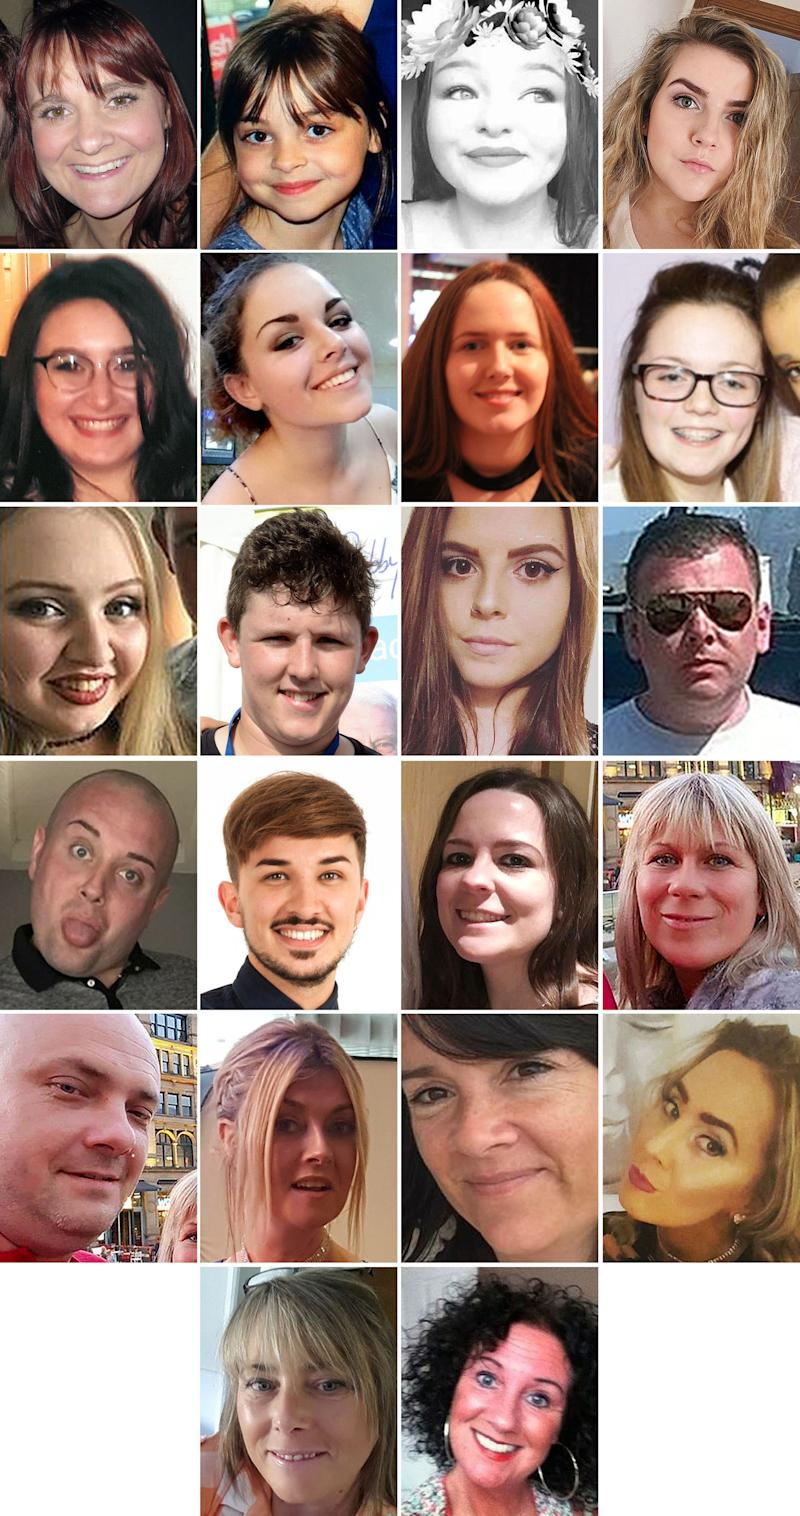 Undated handout file photos issued by Greater Manchester Police of the 22 victims of the terror attack during the Ariana Grande concert at the Manchester Arena in May 2017. (top row left to right) Off-duty police officer Elaine McIver, 43, Saffie Roussos, 8, Sorrell Leczkowski, 14, Eilidh MacLeod, 14, (second row left to right) Nell Jones, 14, Olivia Campbell-Hardy, 15, Megan Hurley, 15, Georgina Callander, 18, (third row left to right), Chloe Rutherford,17, Liam Curry, 19, Courtney Boyle, 19, and Philip Tron, 32, (fourth row left to right) John Atkinson, 26, Martyn Hett, 29, Kelly Brewster, 32, Angelika Klis, 39, (fifth row left to right) Marcin Klis, 42, Michelle Kiss, 45, Alison Howe, 45, and Lisa Lees, 43 (fifth row left to right) Wendy Fawell, 50 and Jane Tweddle, 51.